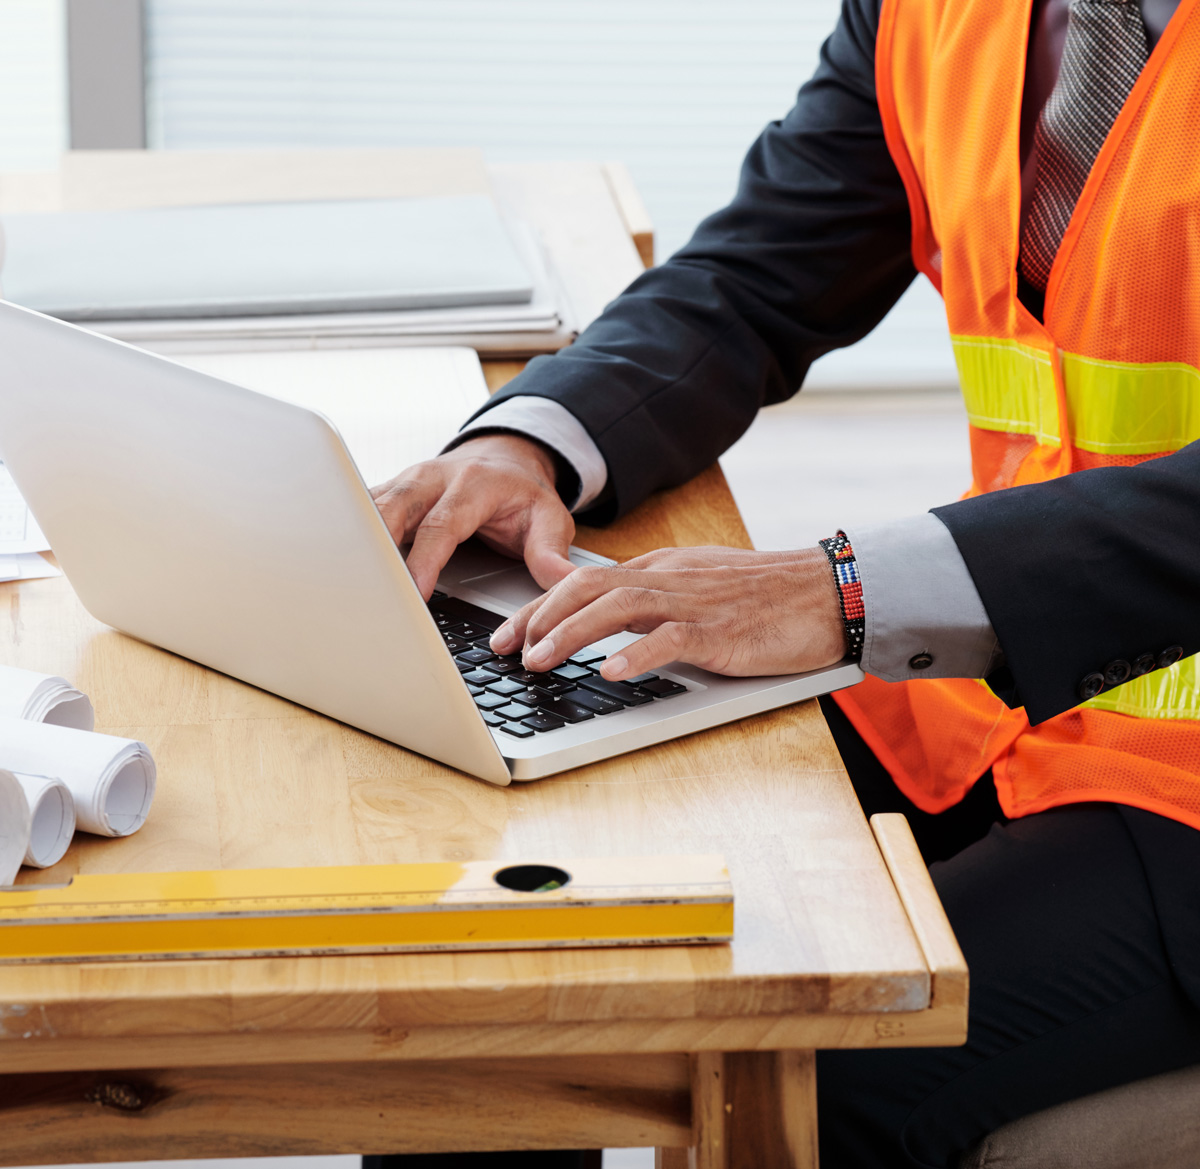 Schedule jobs with Property Maintenance Software - A perfect solution for property maintenance companies.